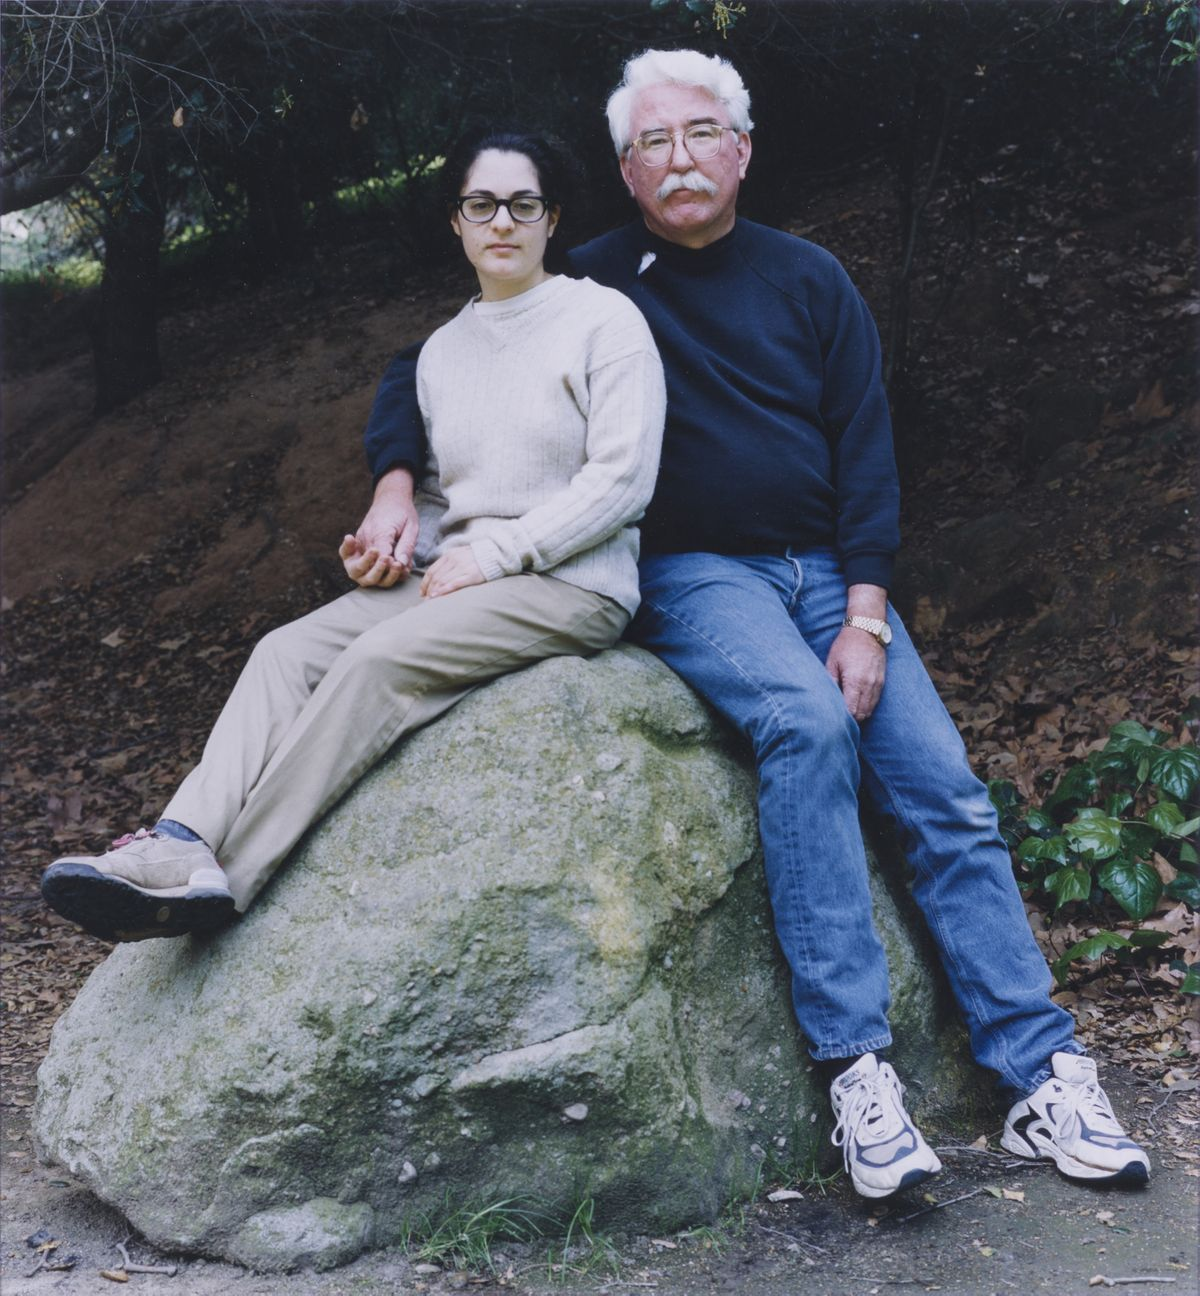 Jennifer Bornstein, Family Pictures/Intervention #1 (Griffith Park, Los  Angeles), 1999